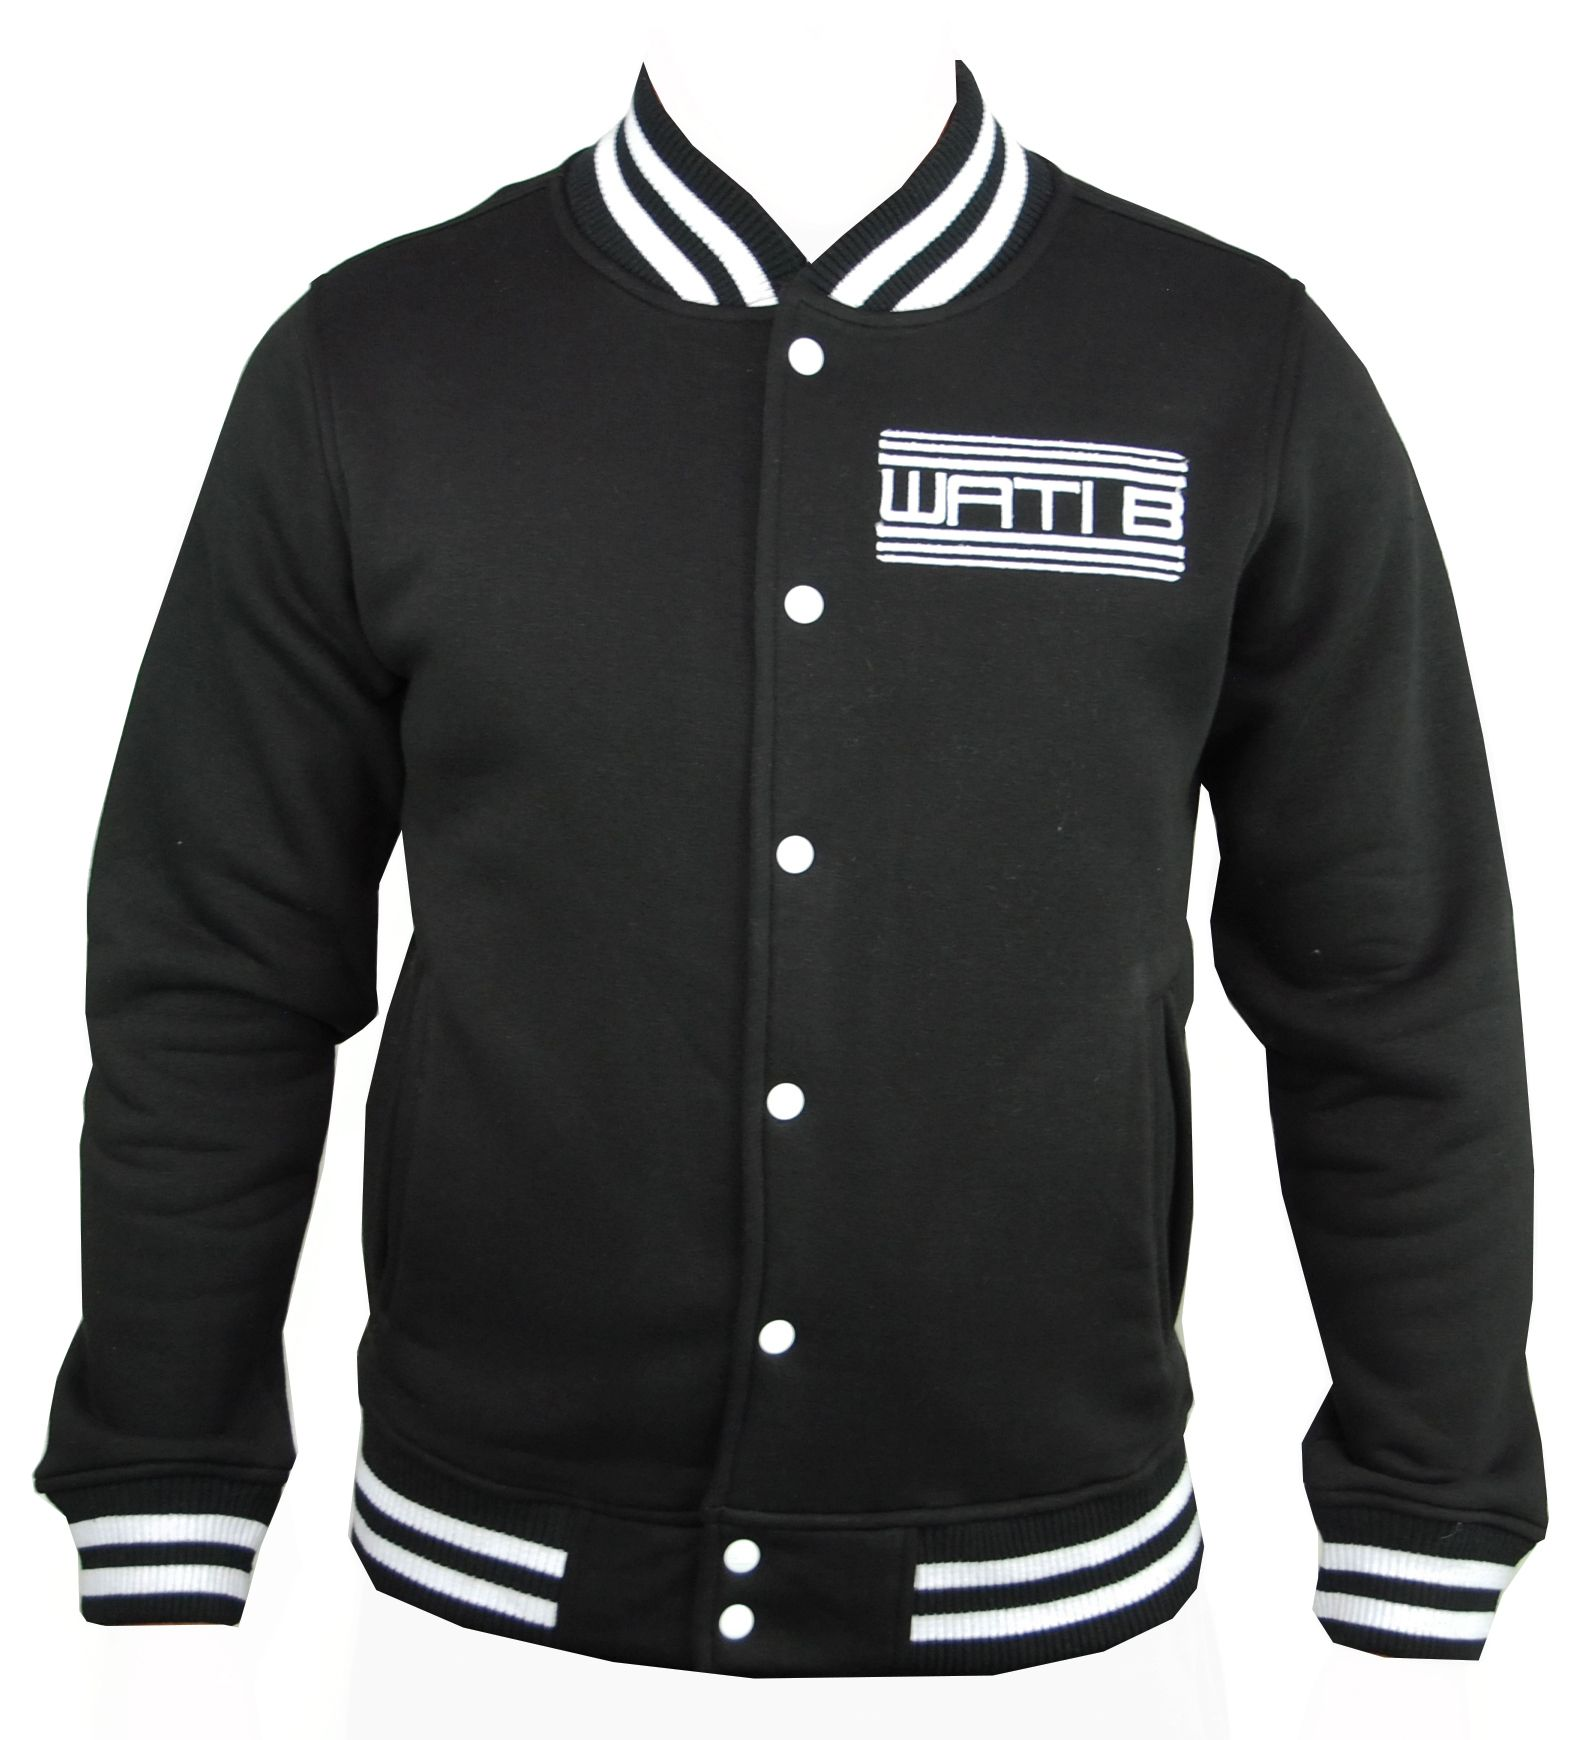 veste teddy wati b enfant noir logo by sexion d 39 assaut ebay. Black Bedroom Furniture Sets. Home Design Ideas